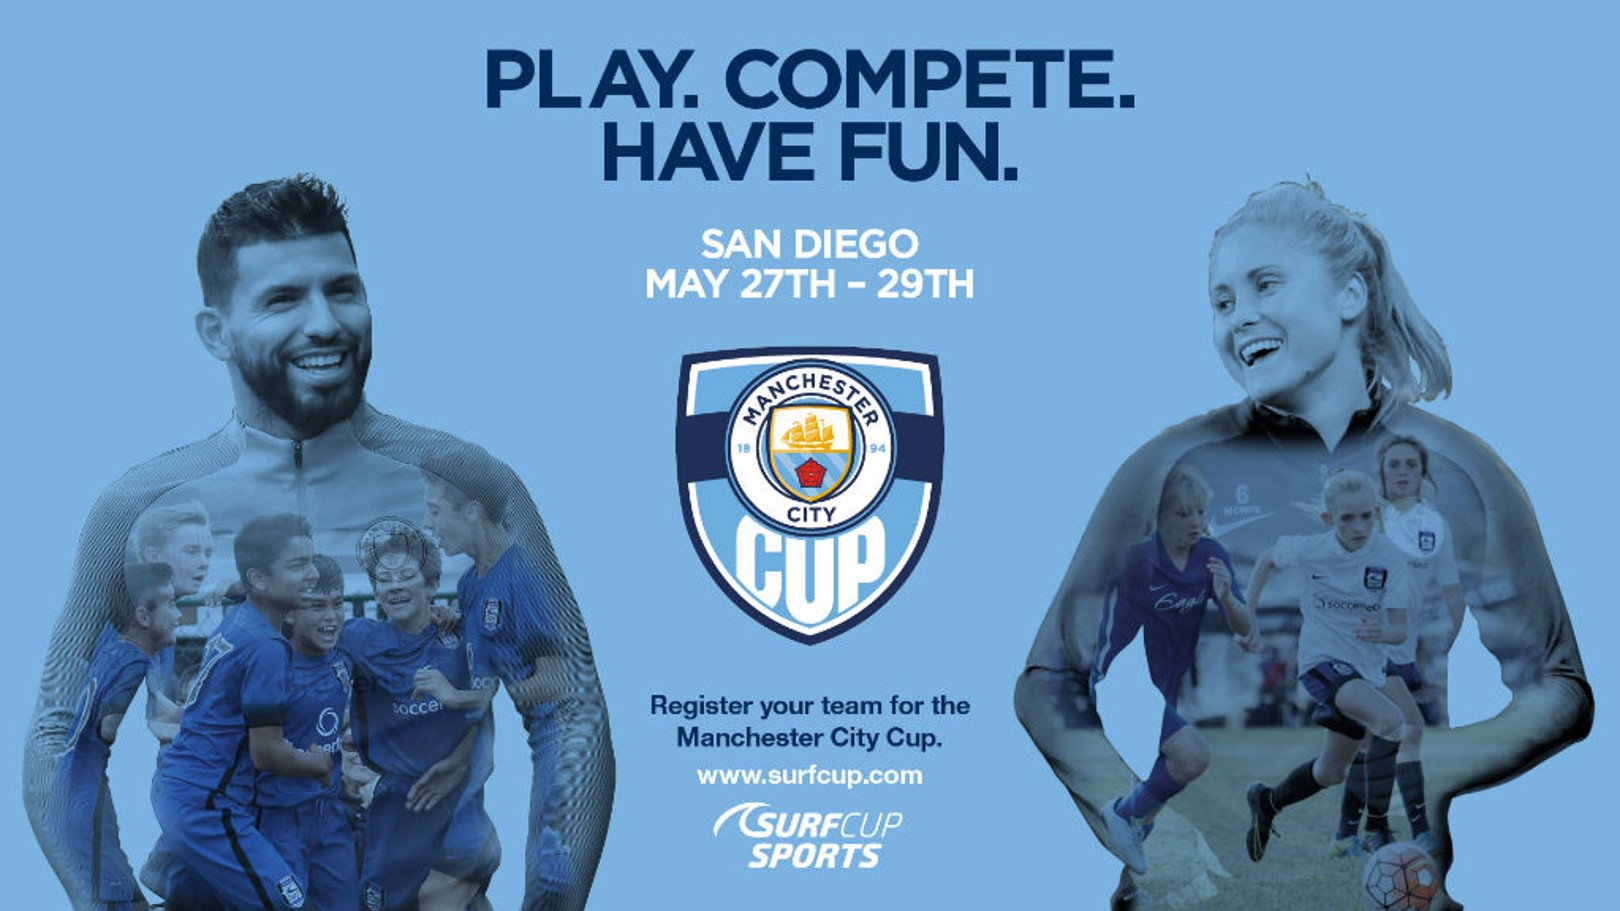 STATESIDE: The Manchester City Cup heads back to San Diego.